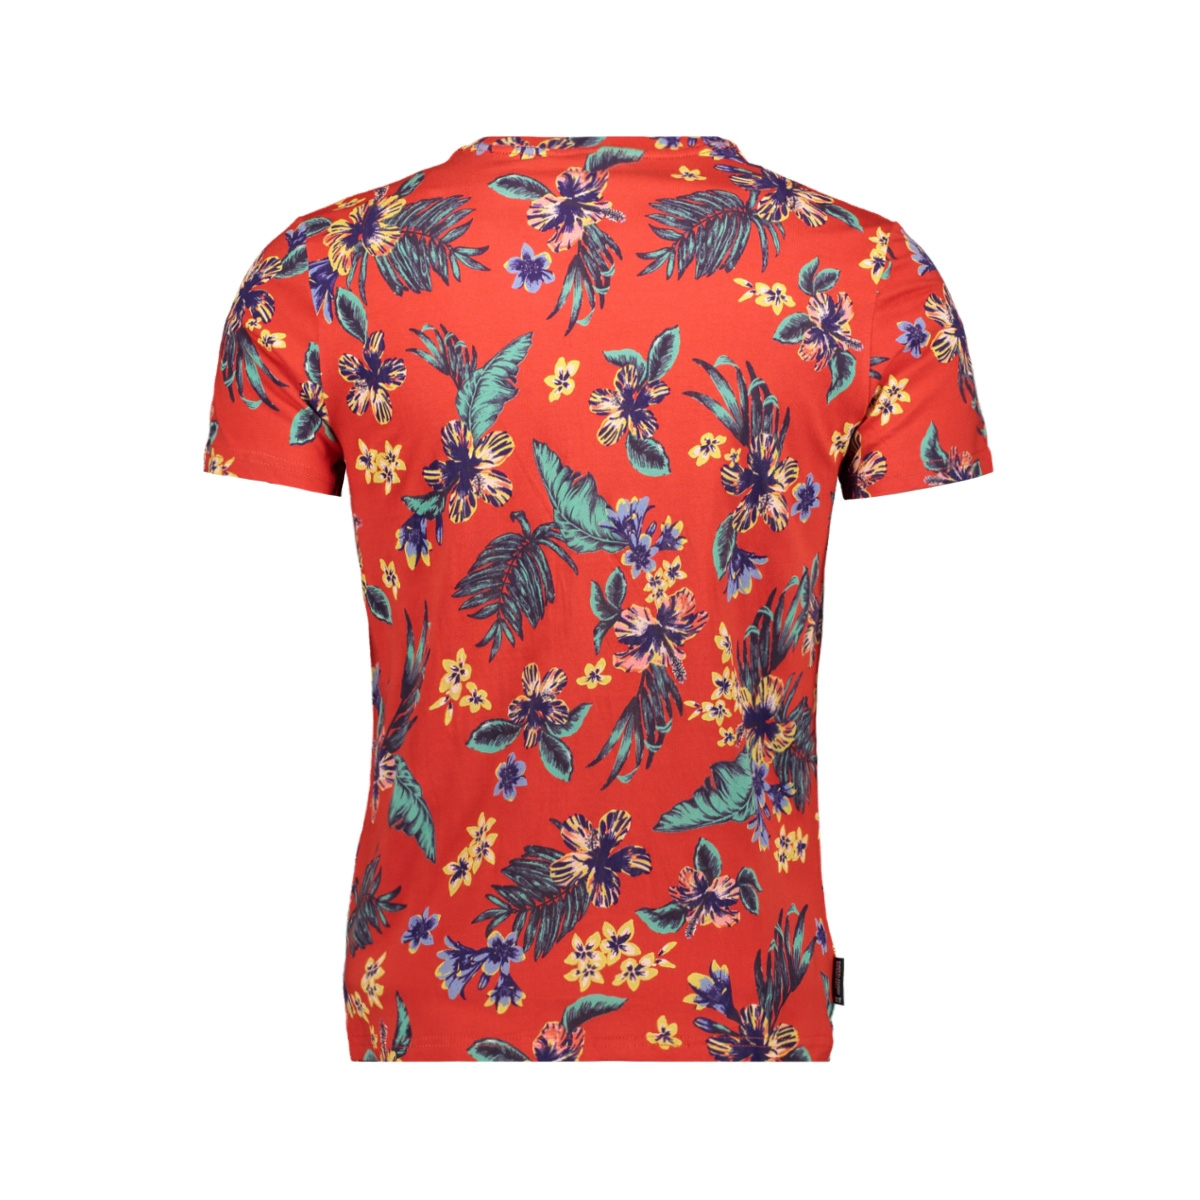 super 5 s teem1010106b superdry t-shirt vintage tripical red